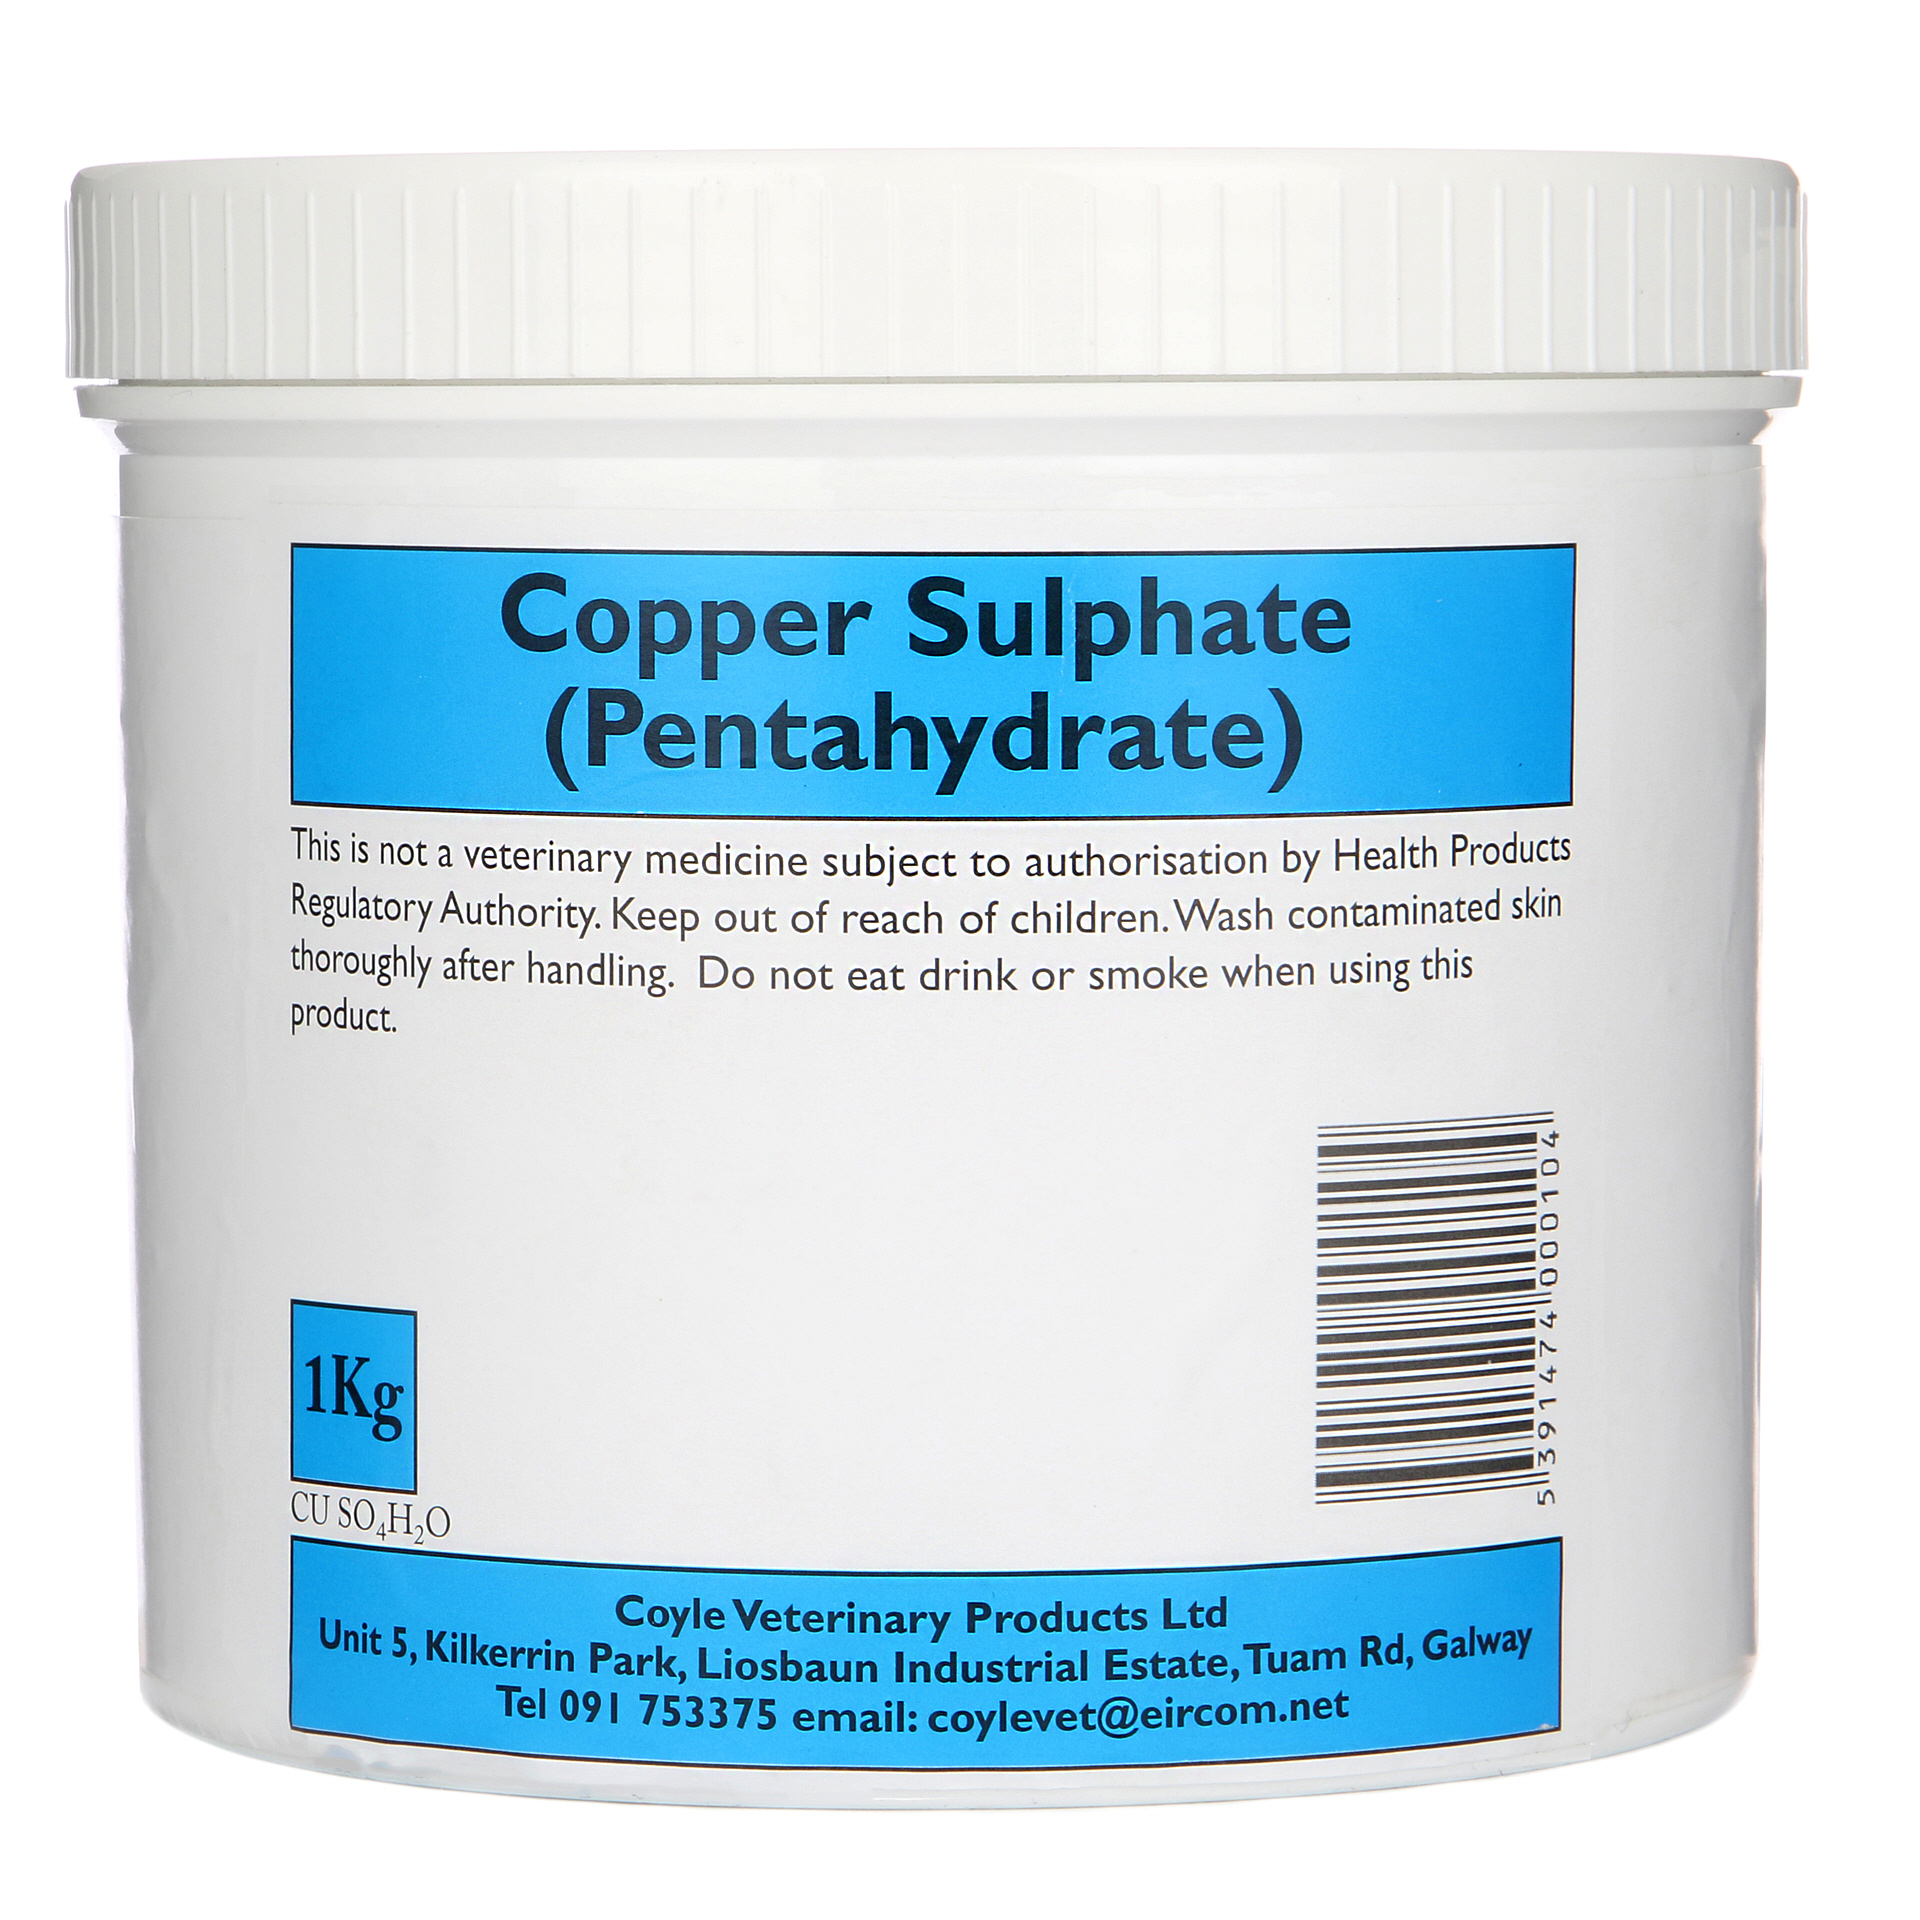 Copper Sulphate 1kg Tub